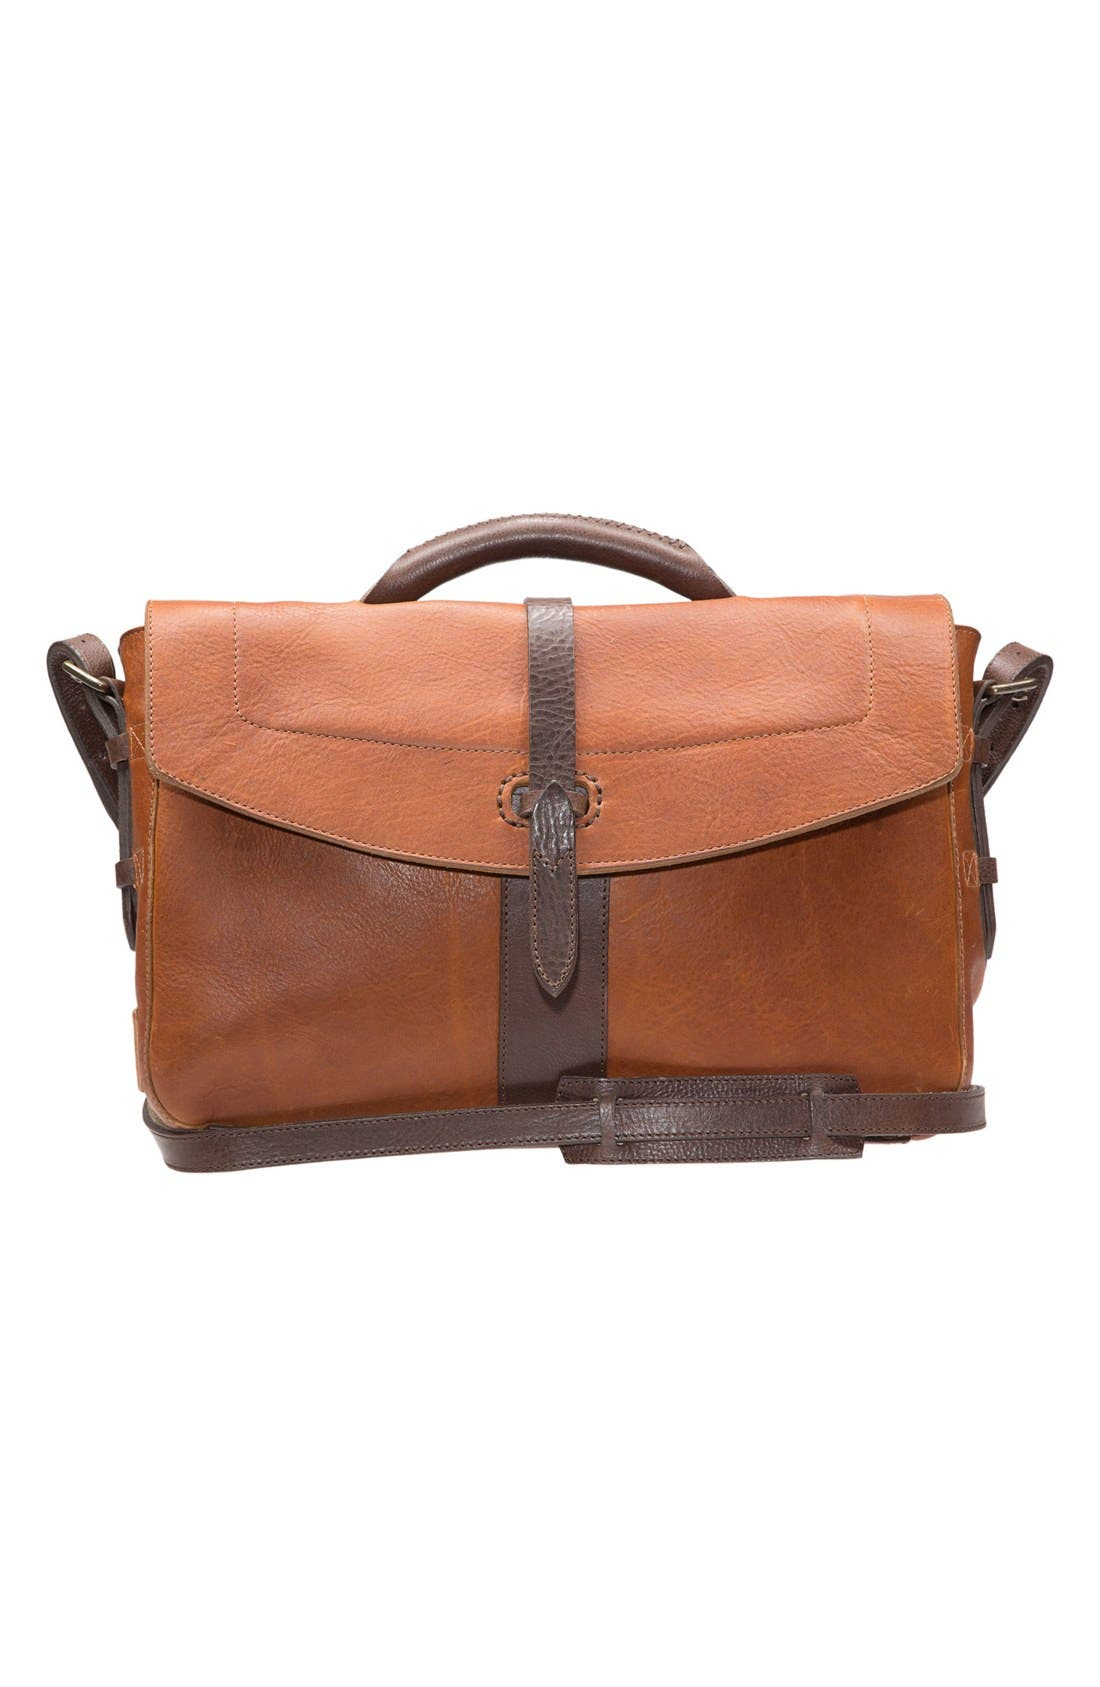 Main Image - Will Leather Goods 'Brandon' Leather Messenger Bag